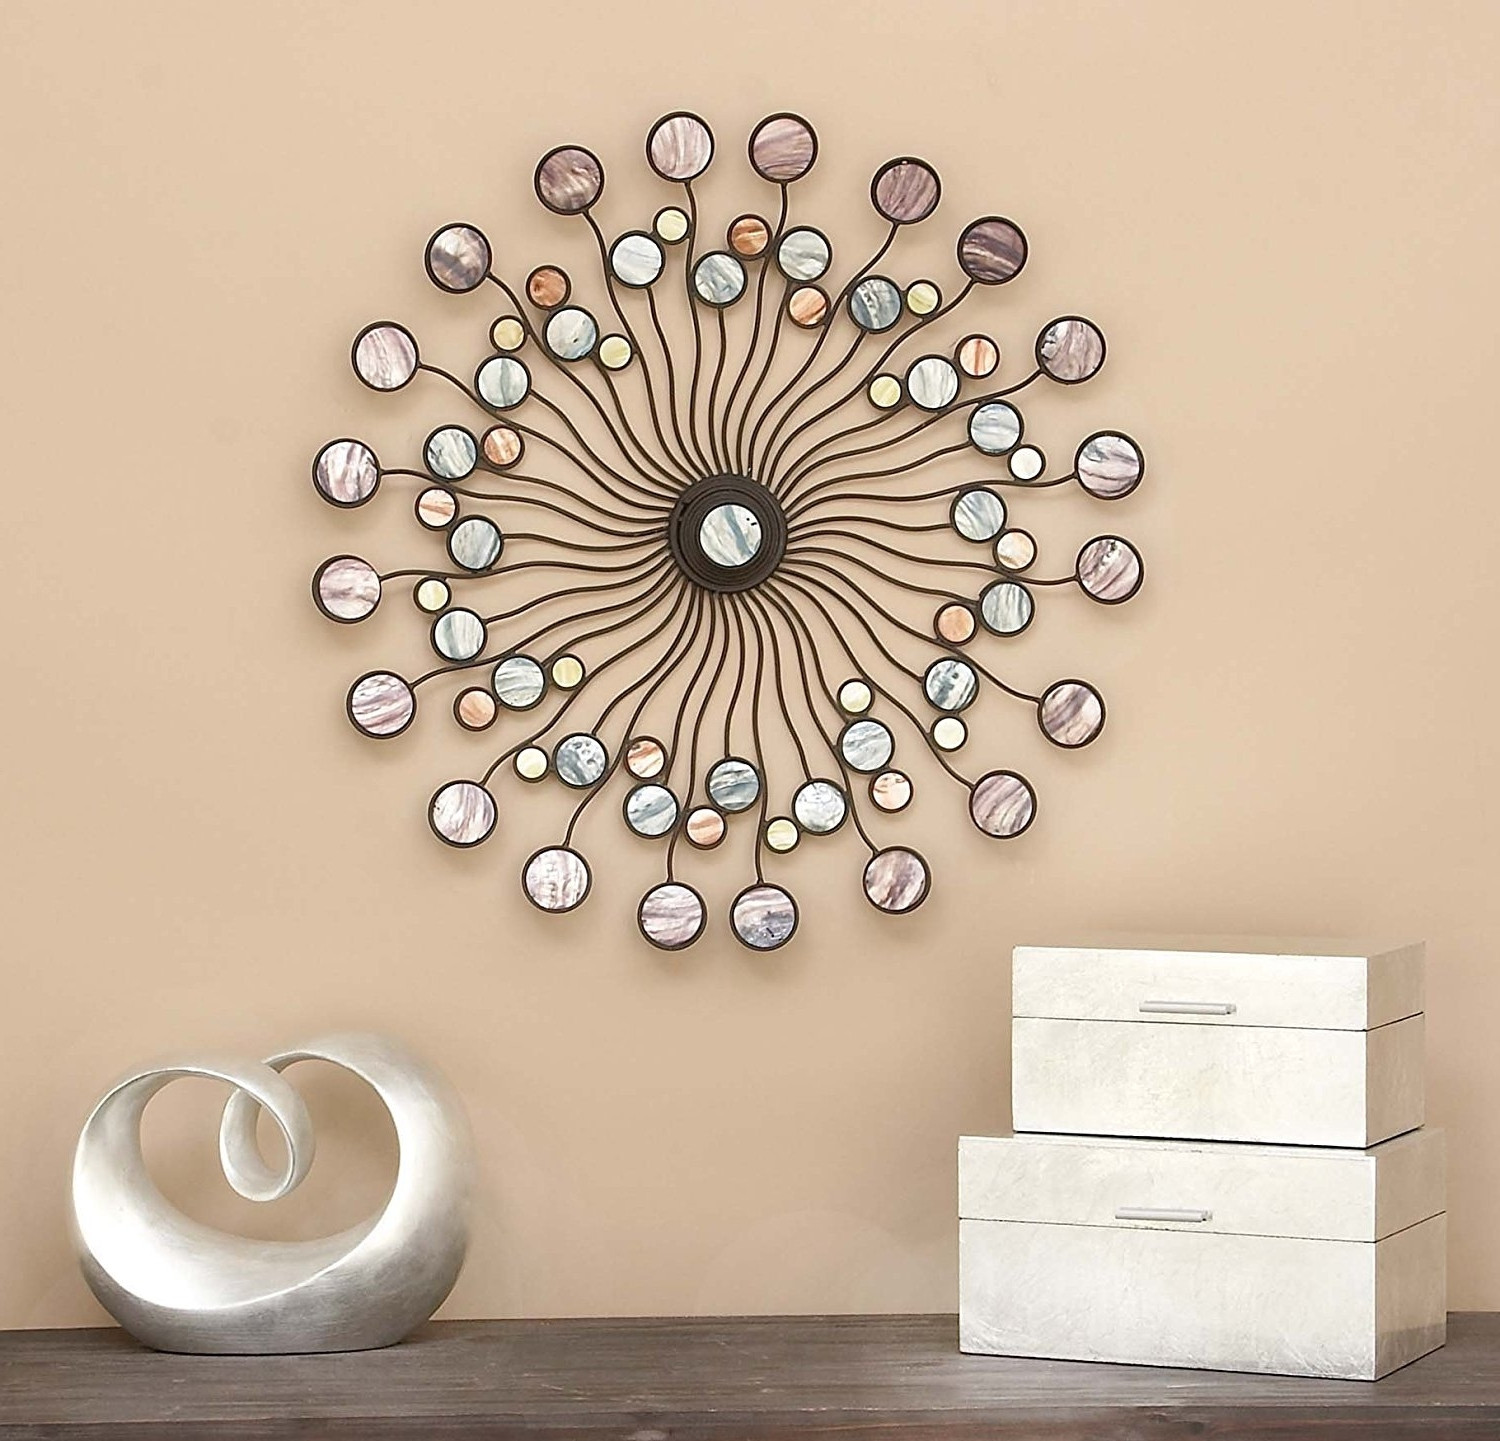 Best ideas about Metal Wall Art Amazon . Save or Pin 15 Best Collection of Amazon Wall Accents Now.